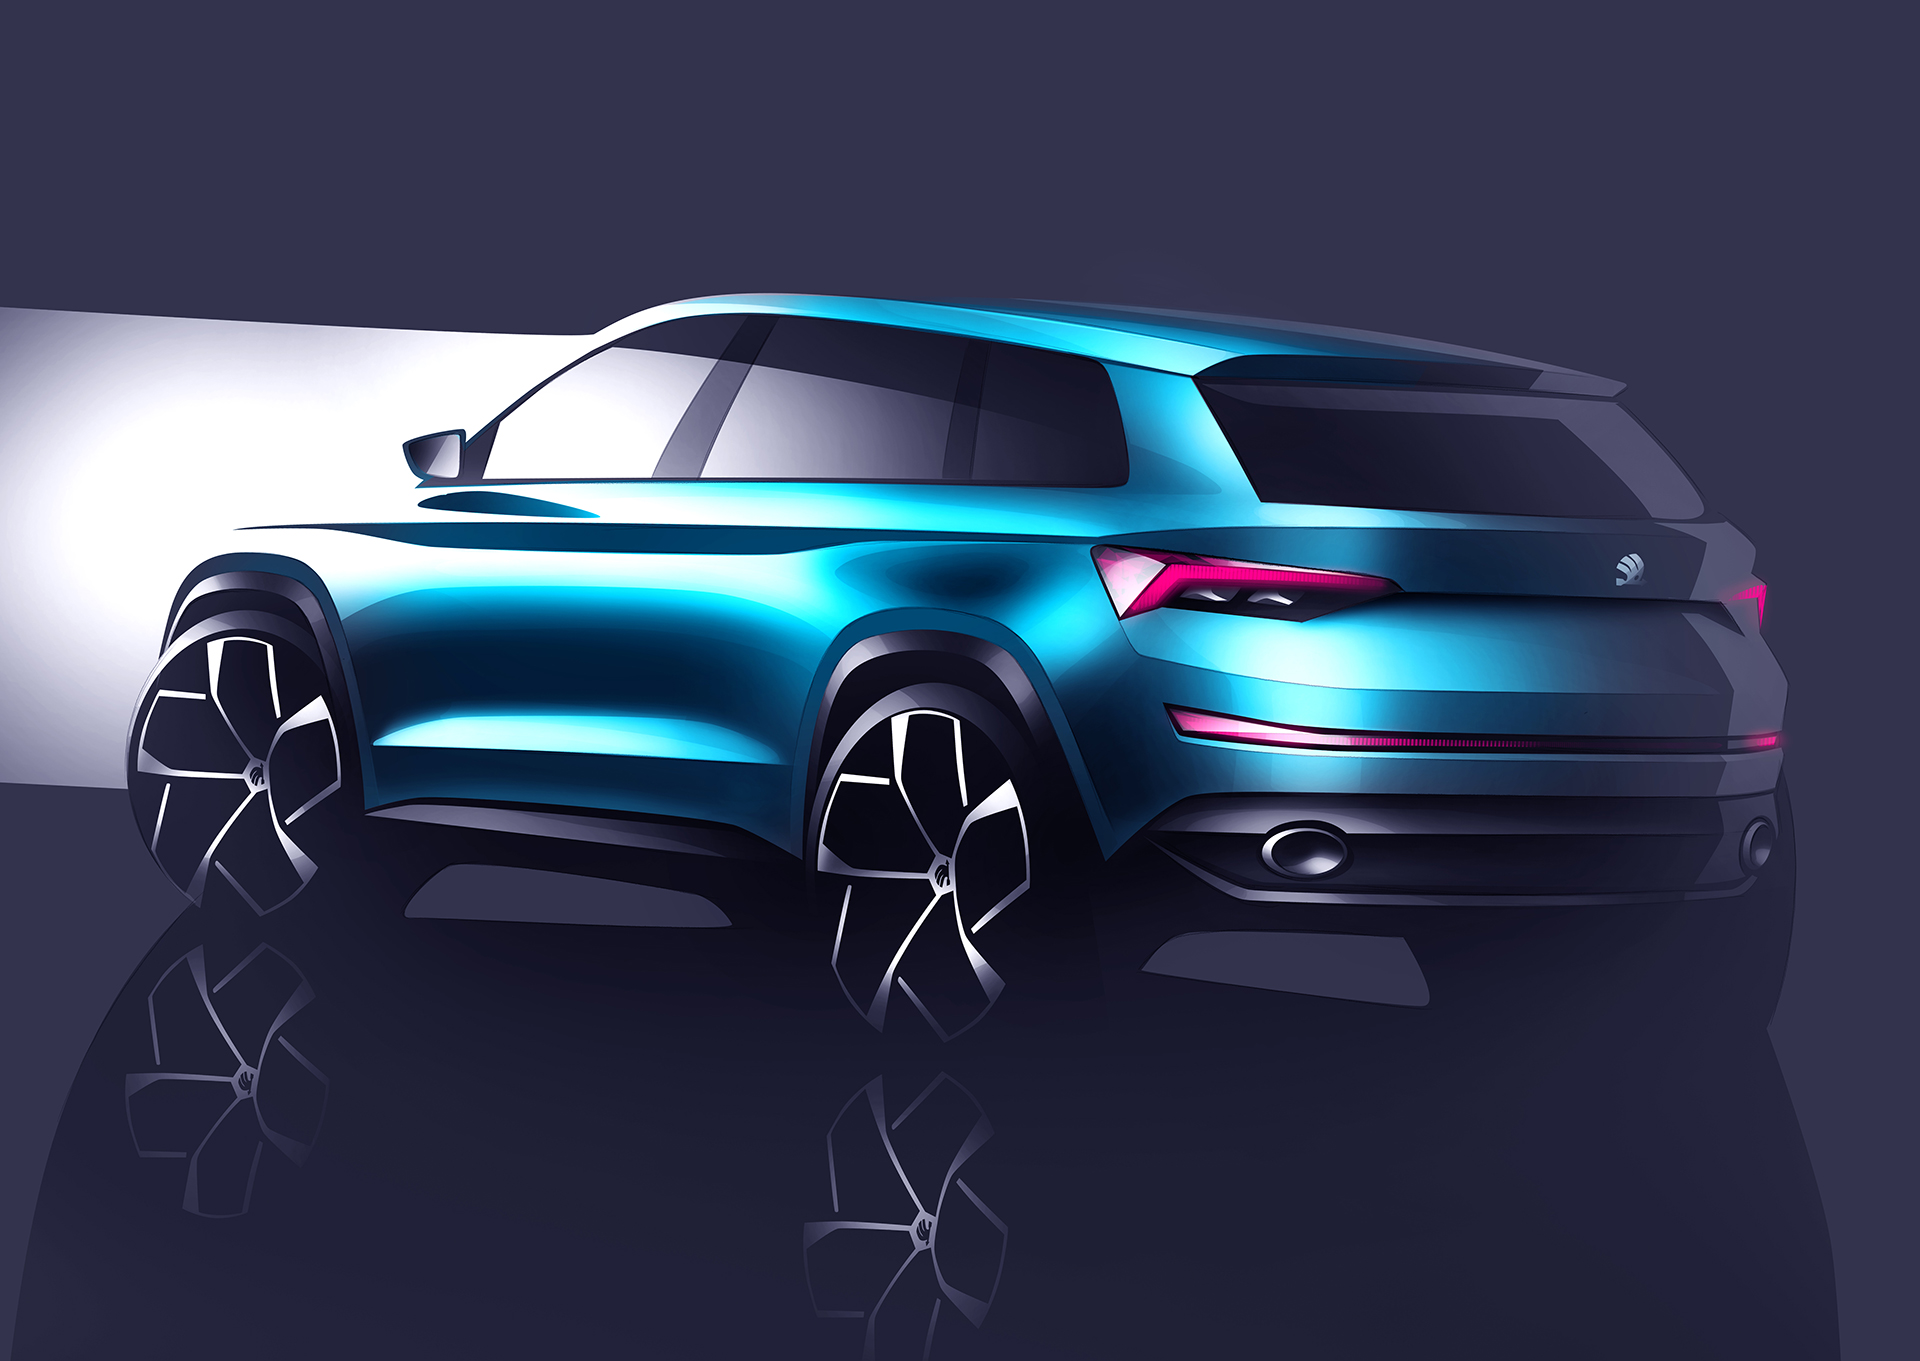 Skoda VisionS Concept - 2016 - rear sketch design